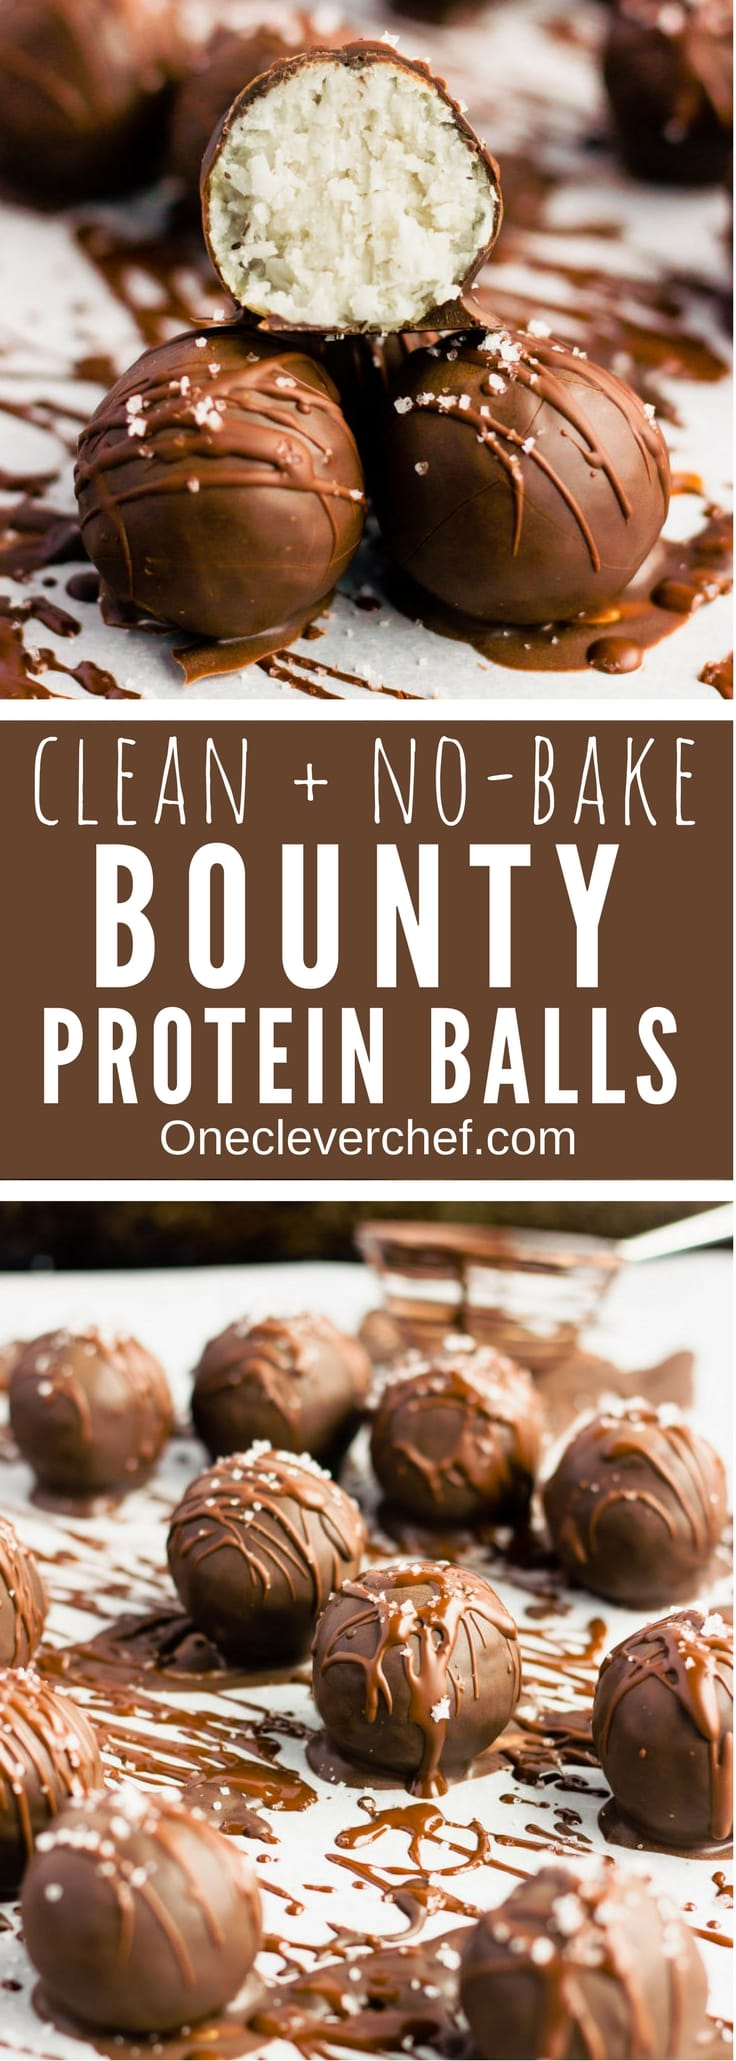 These chocolate covered protein bounty balls are a healthy, homemade version of the classic candy bar. Made of only 6 simple ingredients, these easy to make protein balls are the perfect post-workout treat. This no-bake recipe is also paleo, vegan, gluten-free, flourless, dairy-free and… guilt-free! | www.onecleverchef.com #paleo #vegan #glutenfree #postworkout #protein #healthy #treat #cleaneating